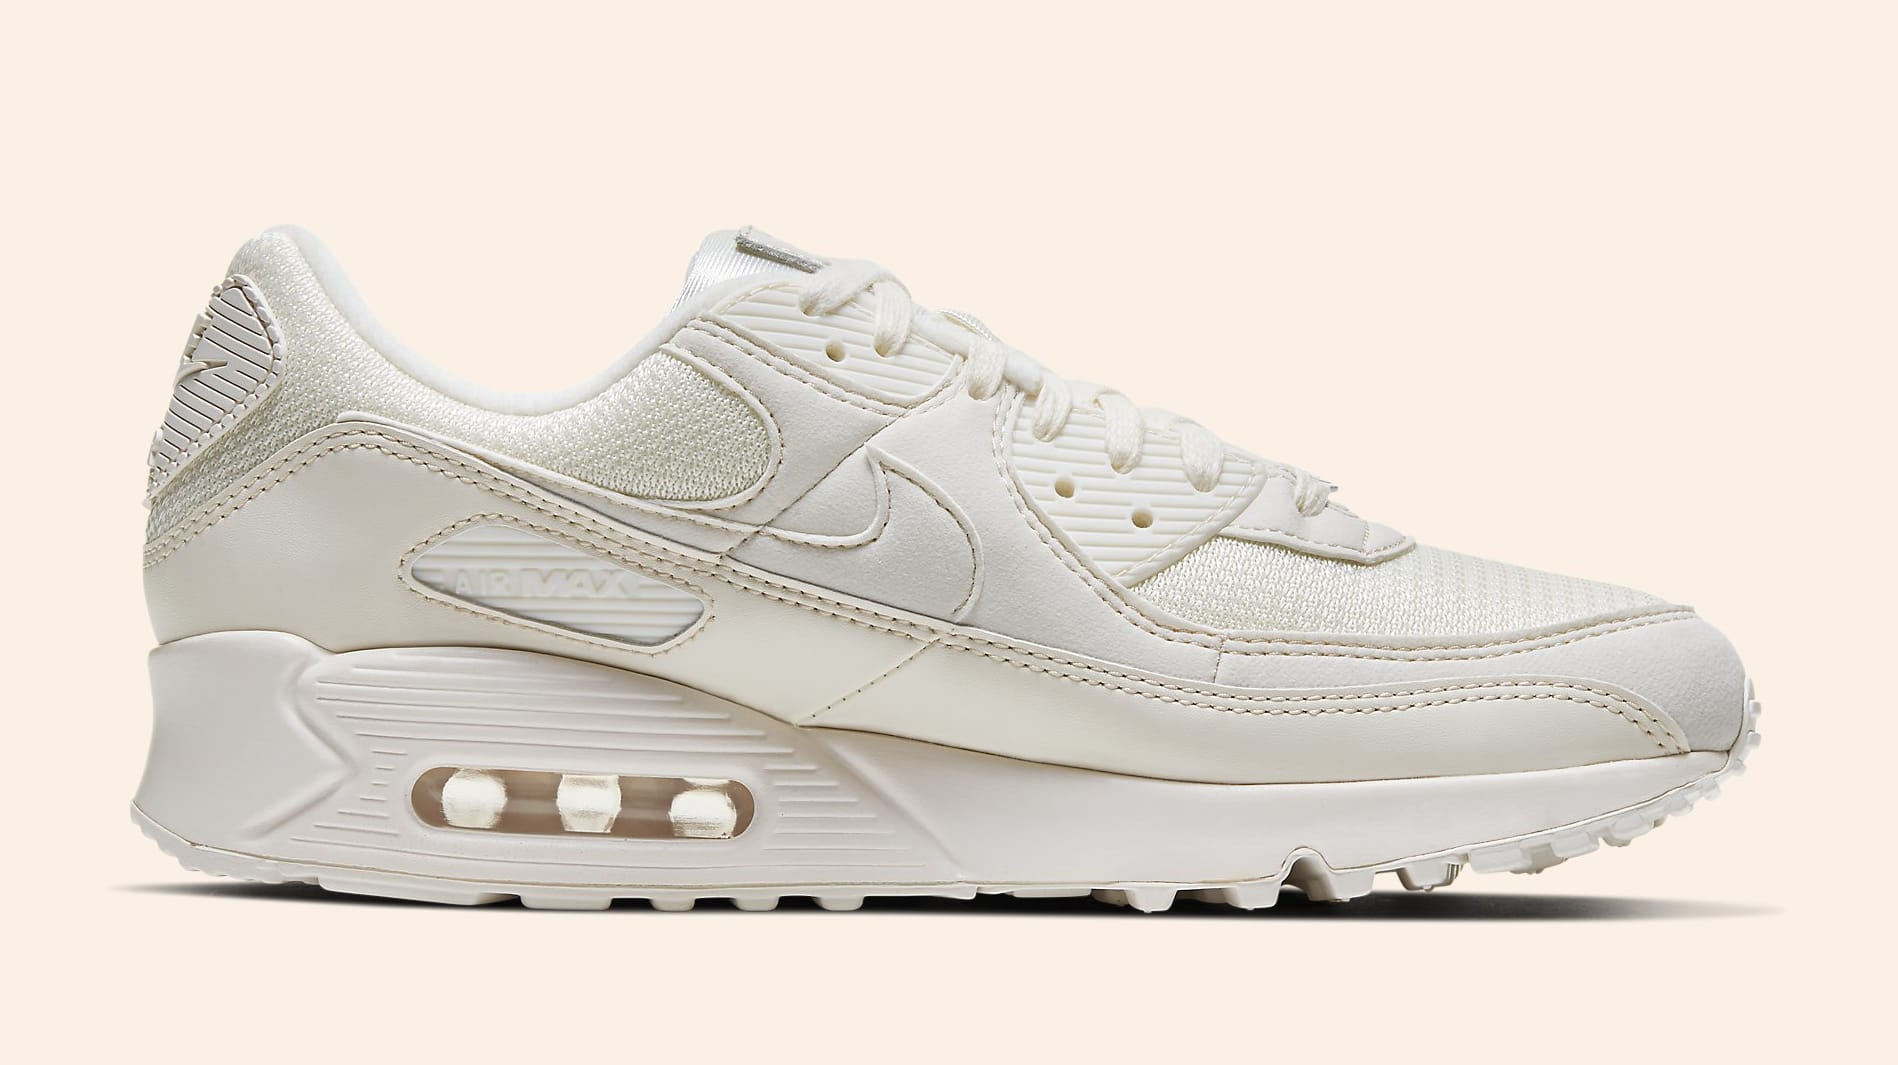 nike-air-max-90-30th-anniversary-sail-ct2007-100-medial